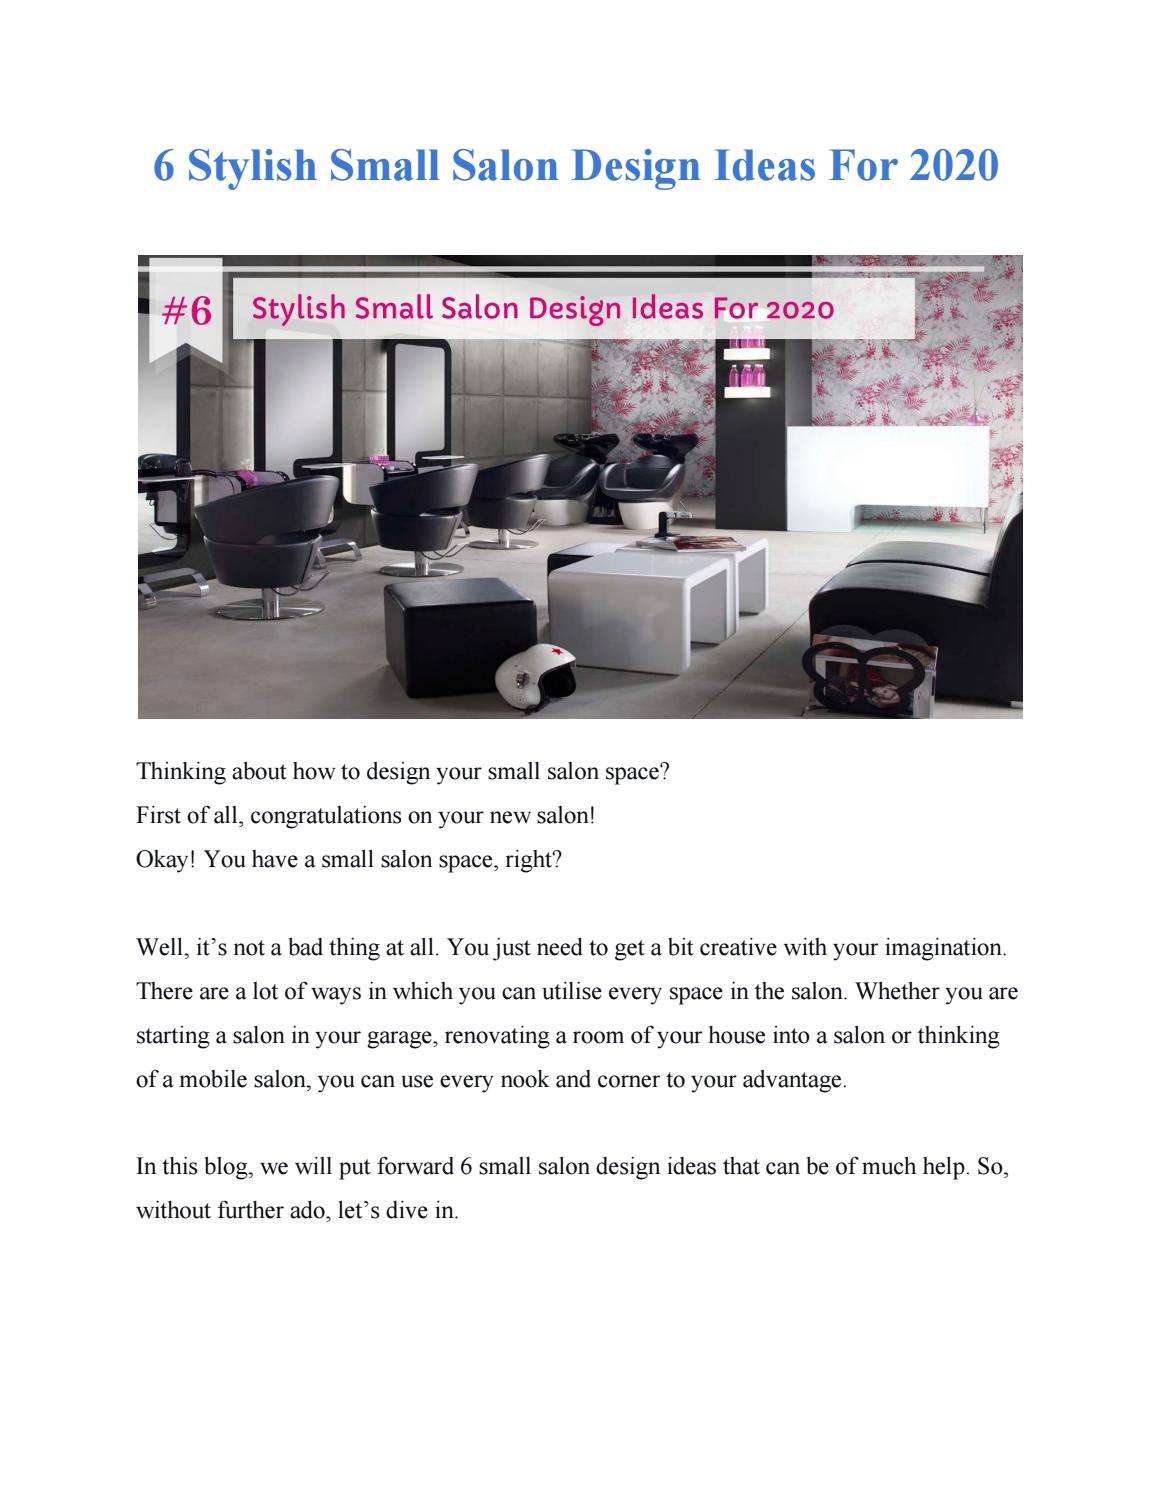 6 Stylish Small Salon Design Ideas For 2020 By Paulmatthes Issuu